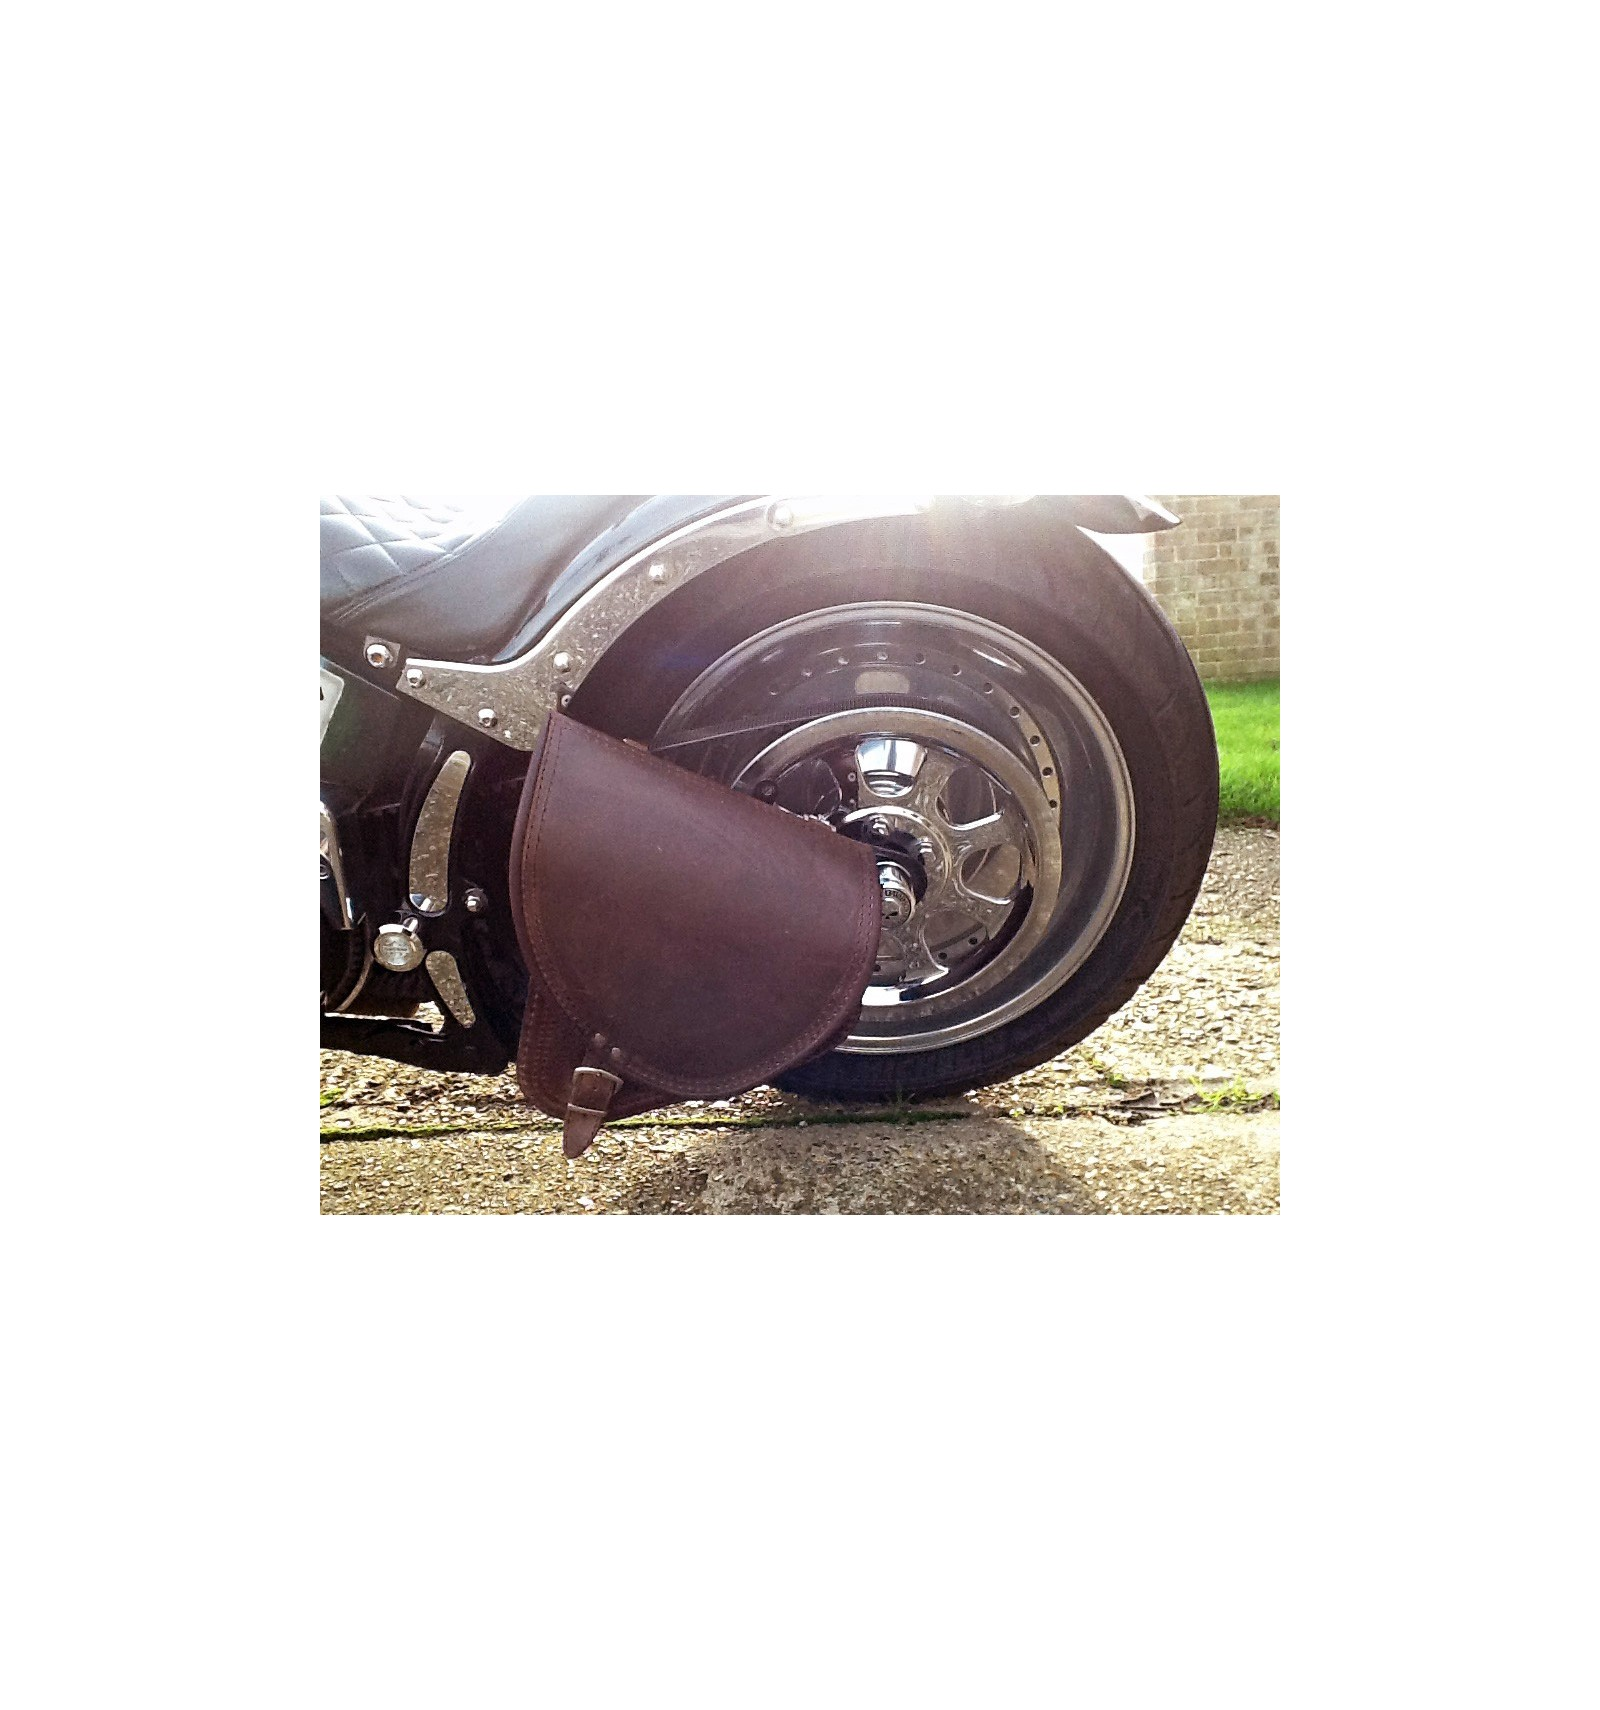 Harley Davidson Windshields >> Harley Davidson Softail Brown Leather Saddle bag - Chrome ...